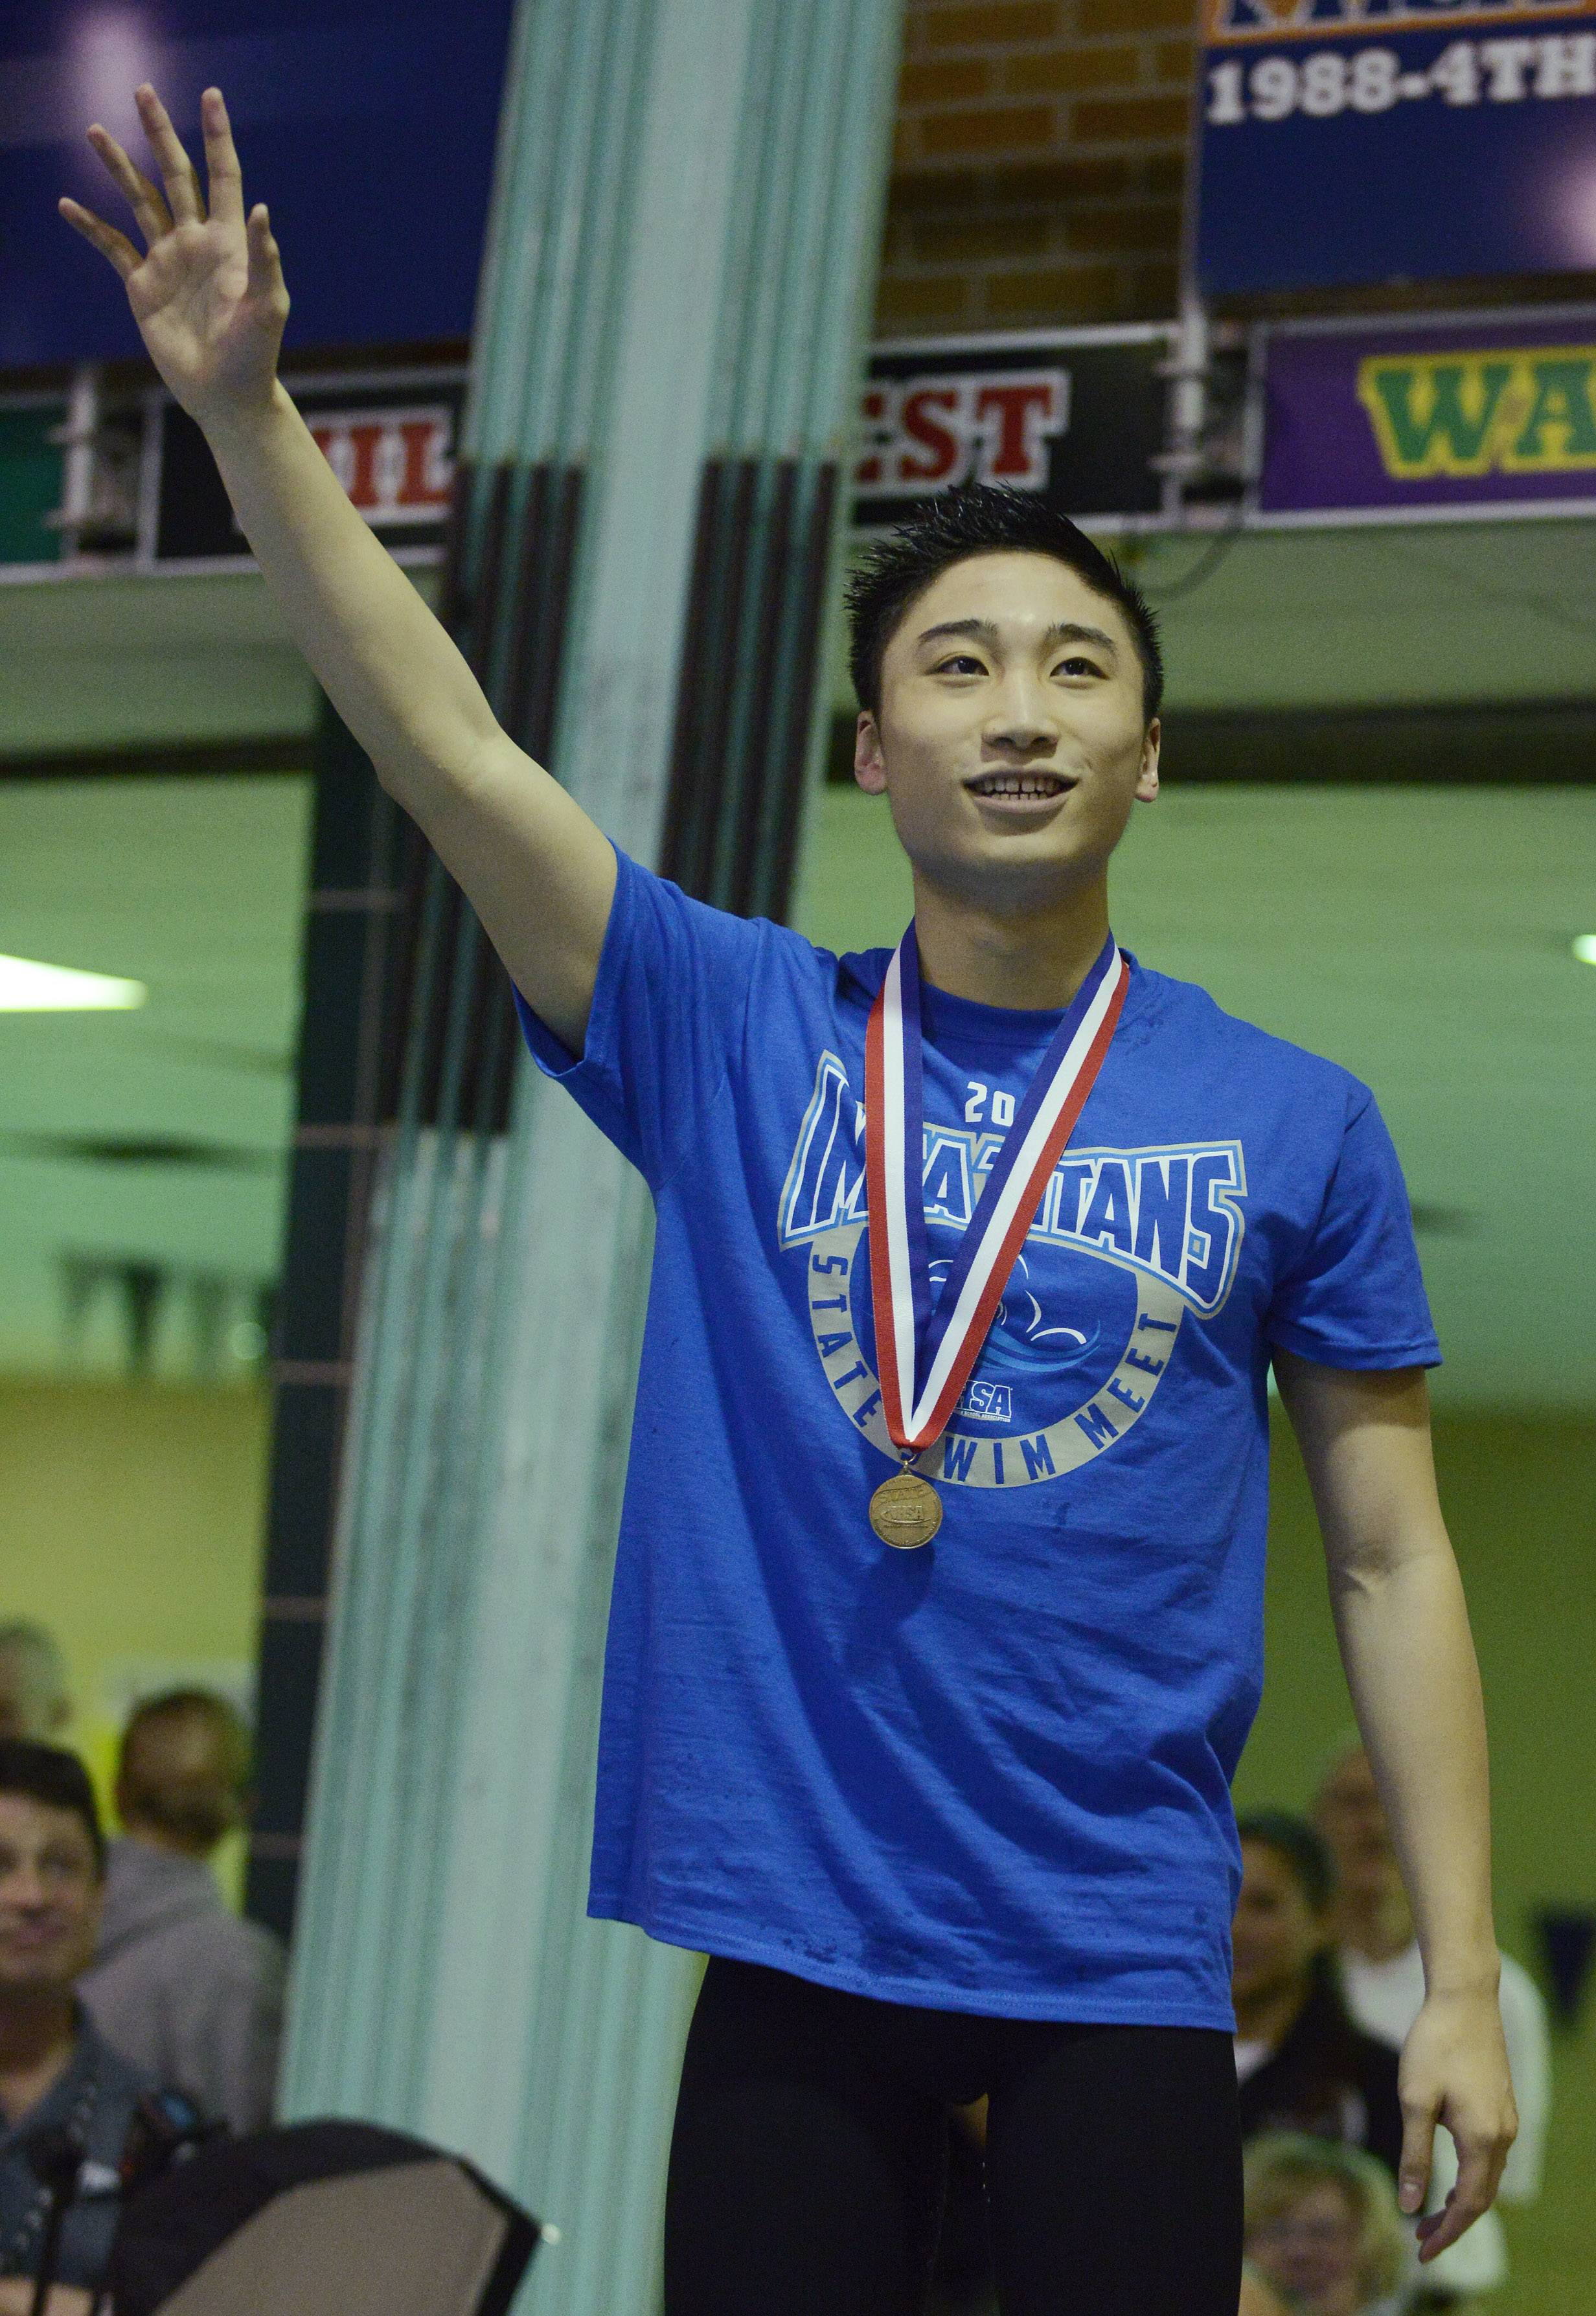 Steven Tan of Illinois Math and Science Academy waves from the award stand after finishing first in the 100-yard butterfly at state Saturday.